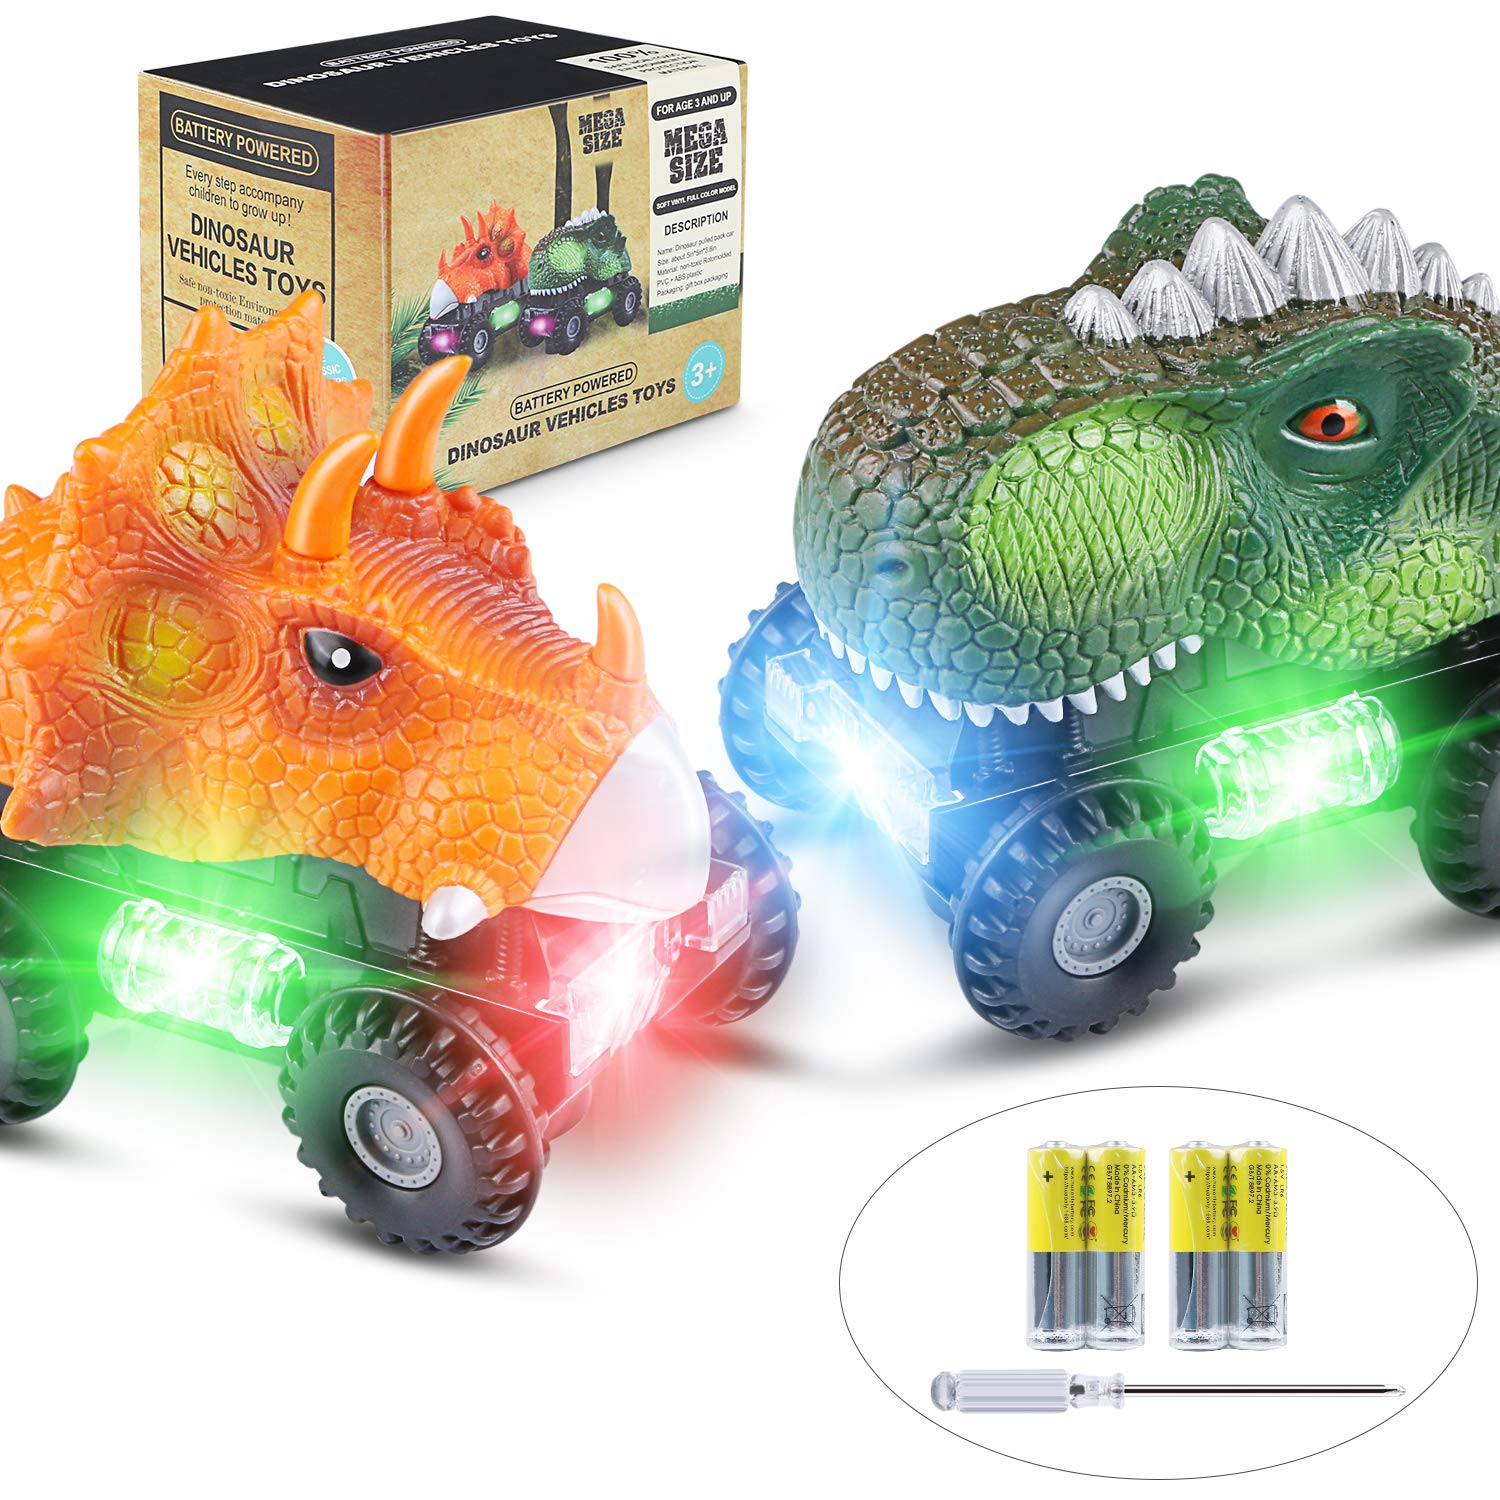 Dinosaur Cars, 2 Pack Dinosaur Vehicles Set Cars with LED Light Sound Dinosaur Toys for Boys Toddlers Girls Kids Gifts